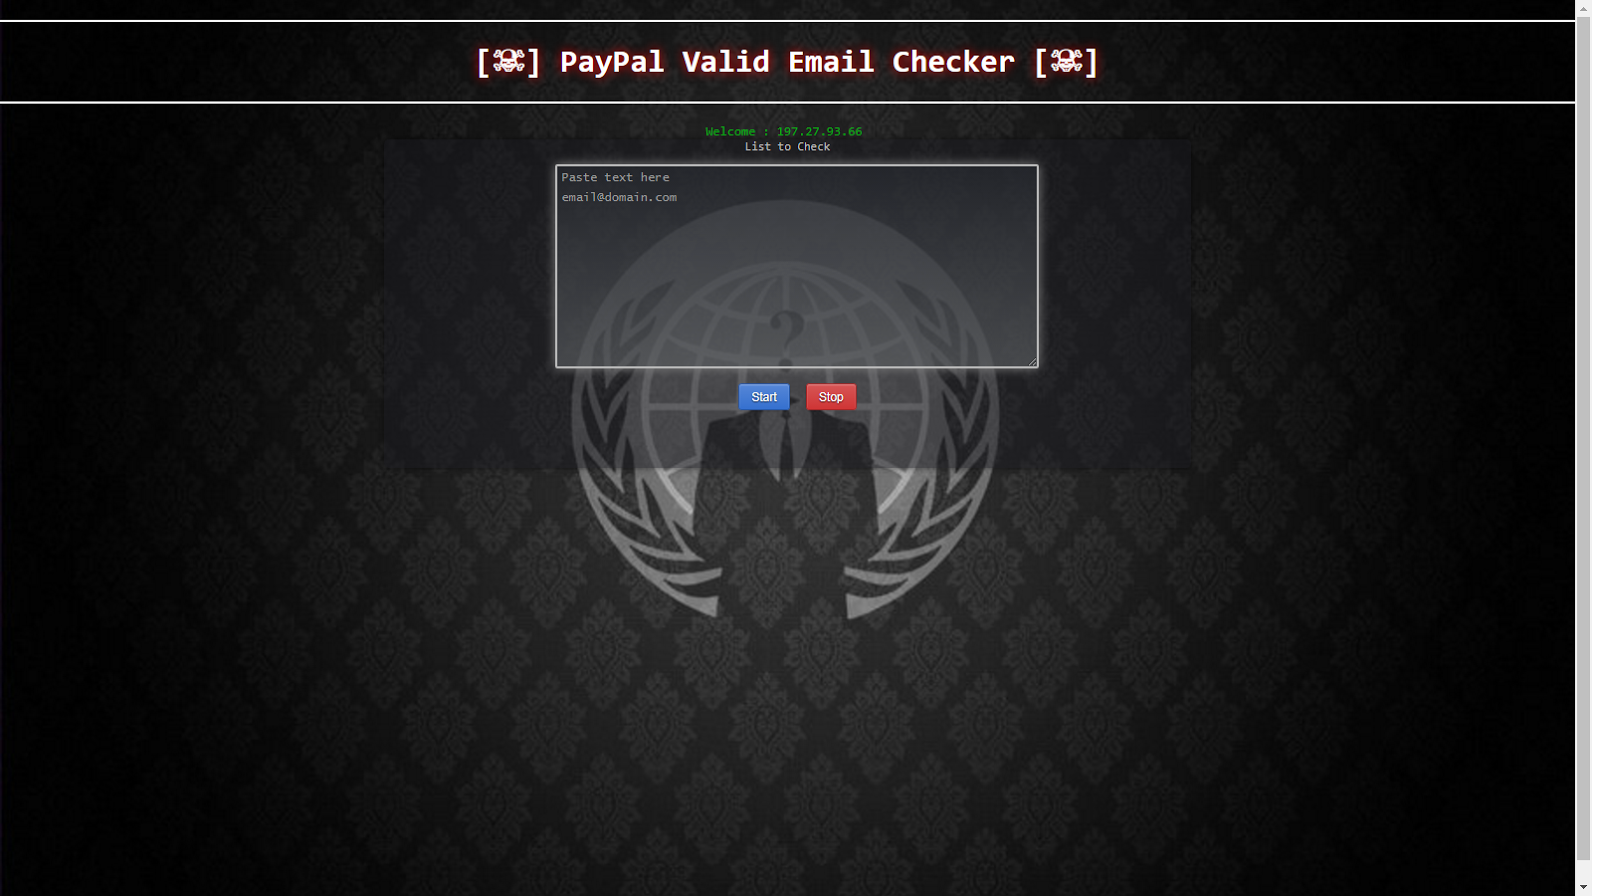 paypal valid email checker 2017 - Hack Tools